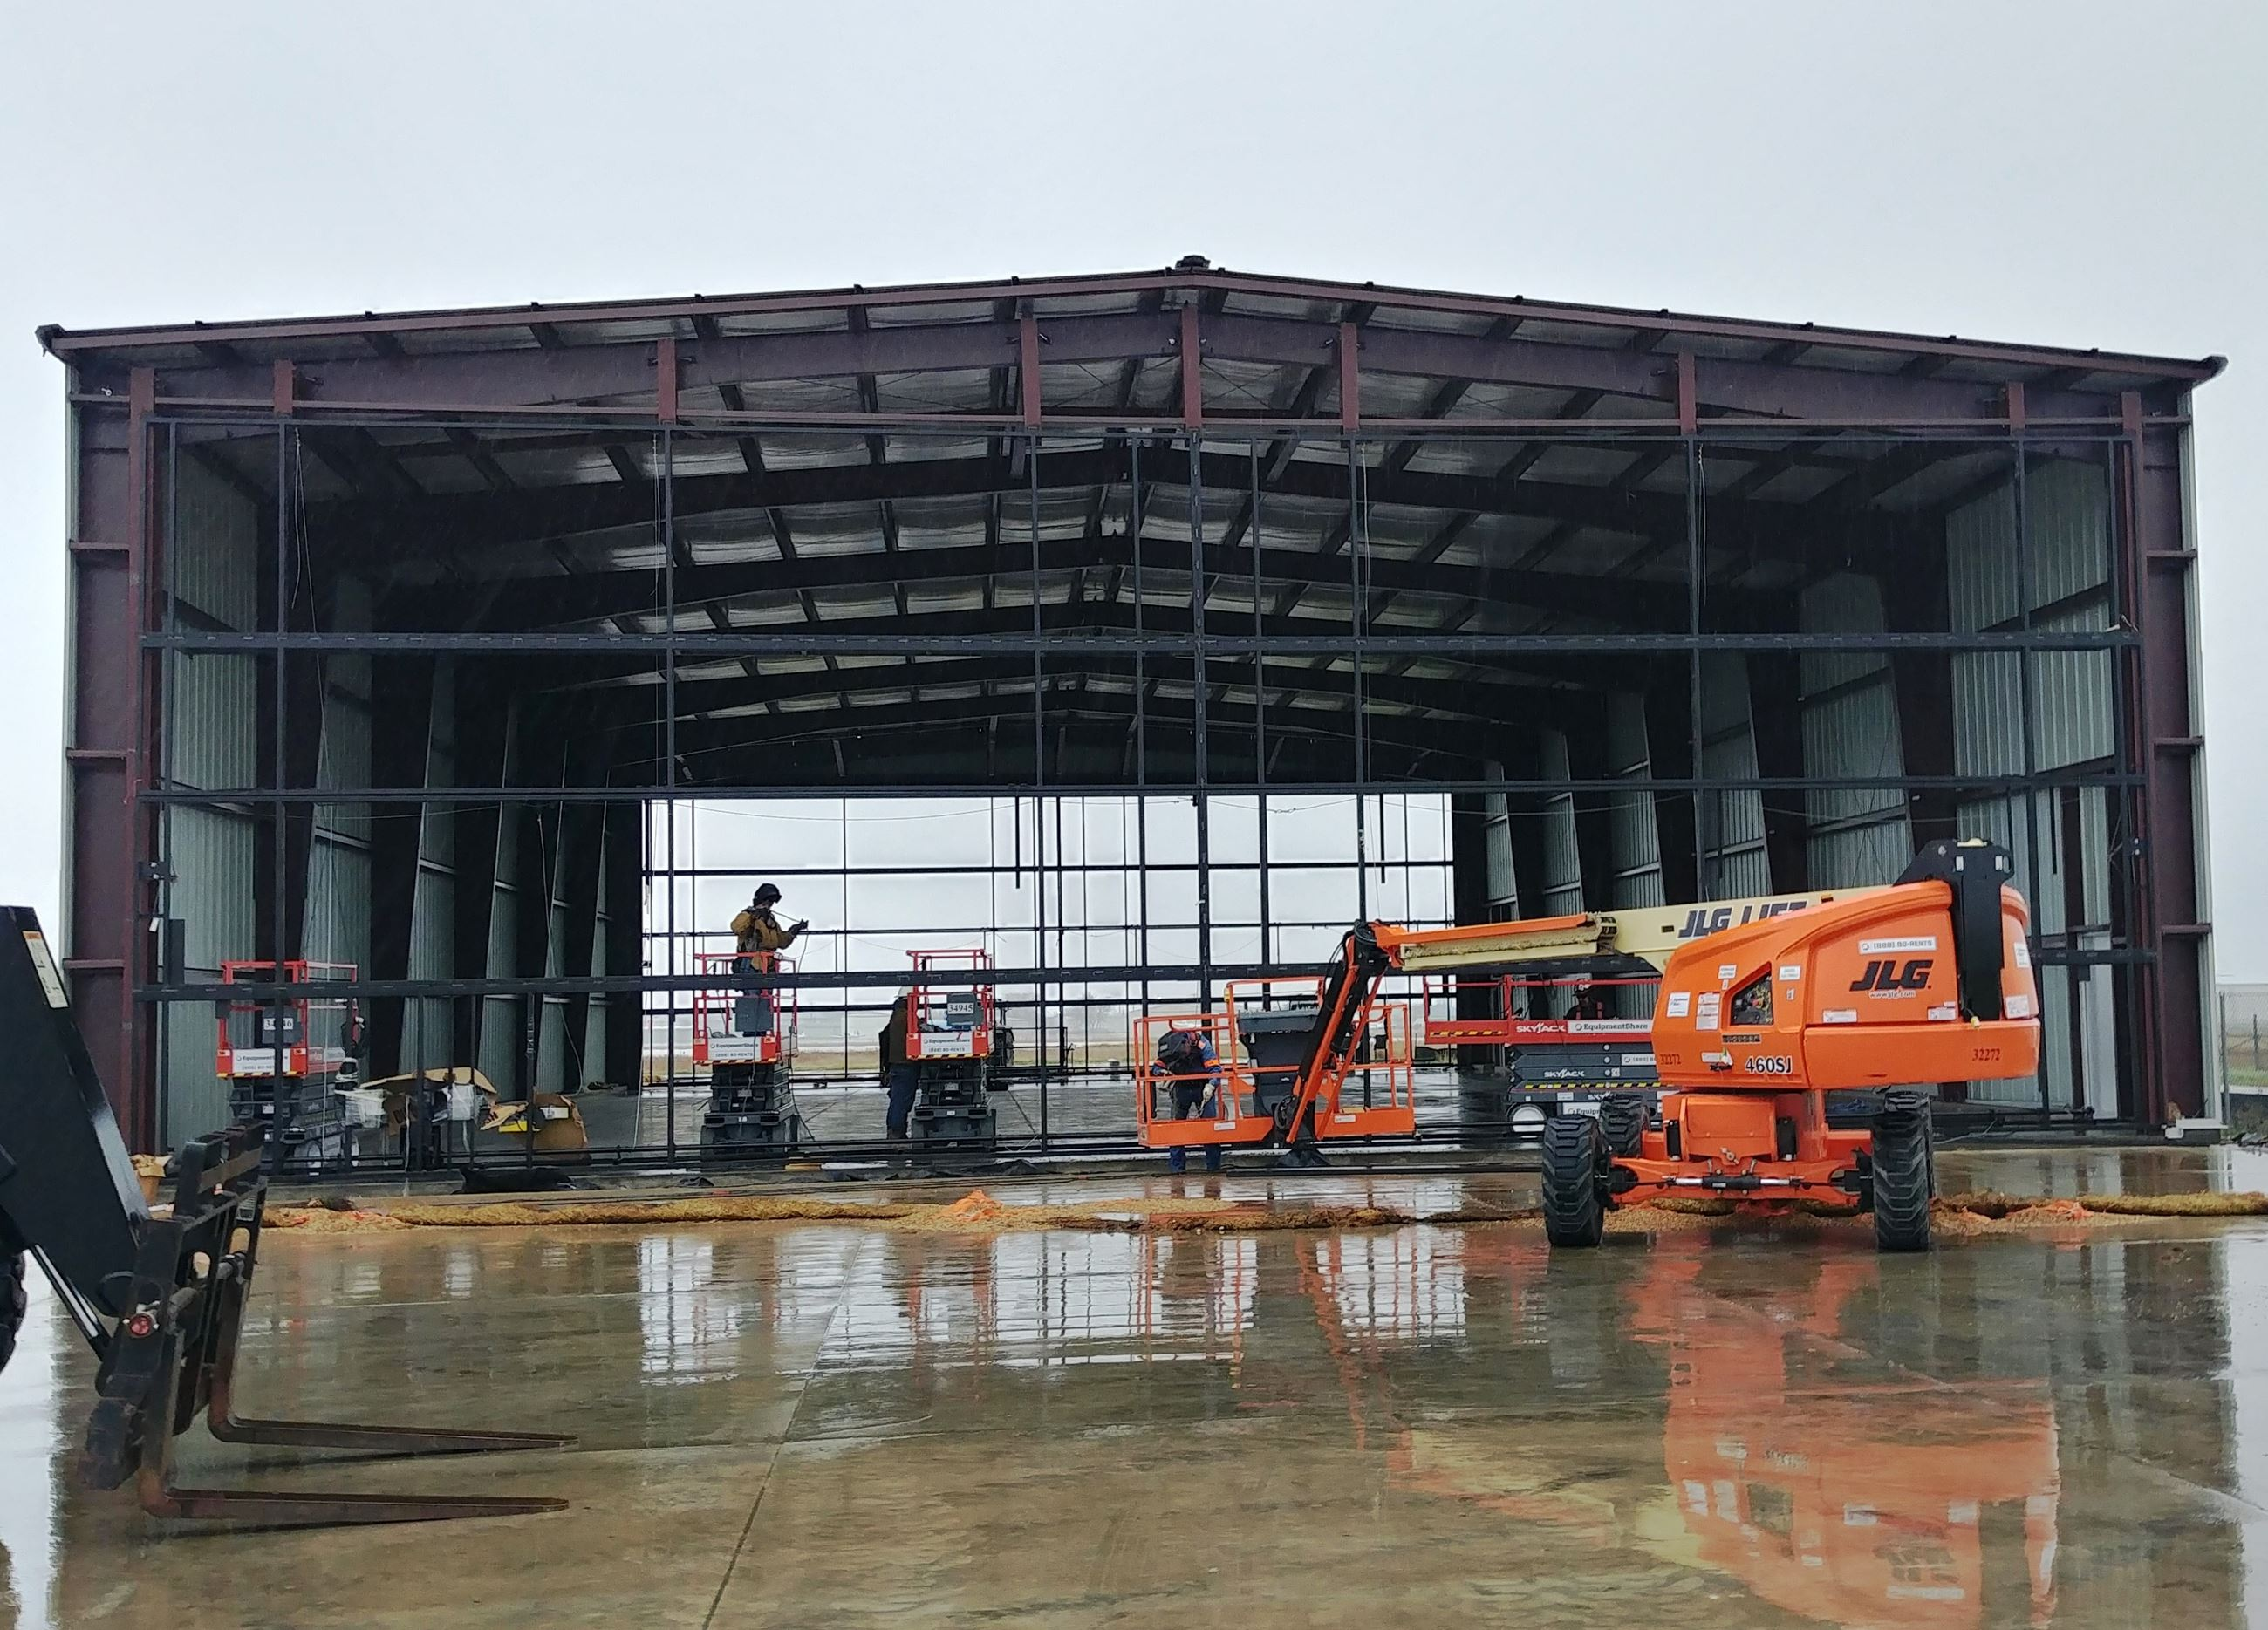 Interior construction work of airport hanger